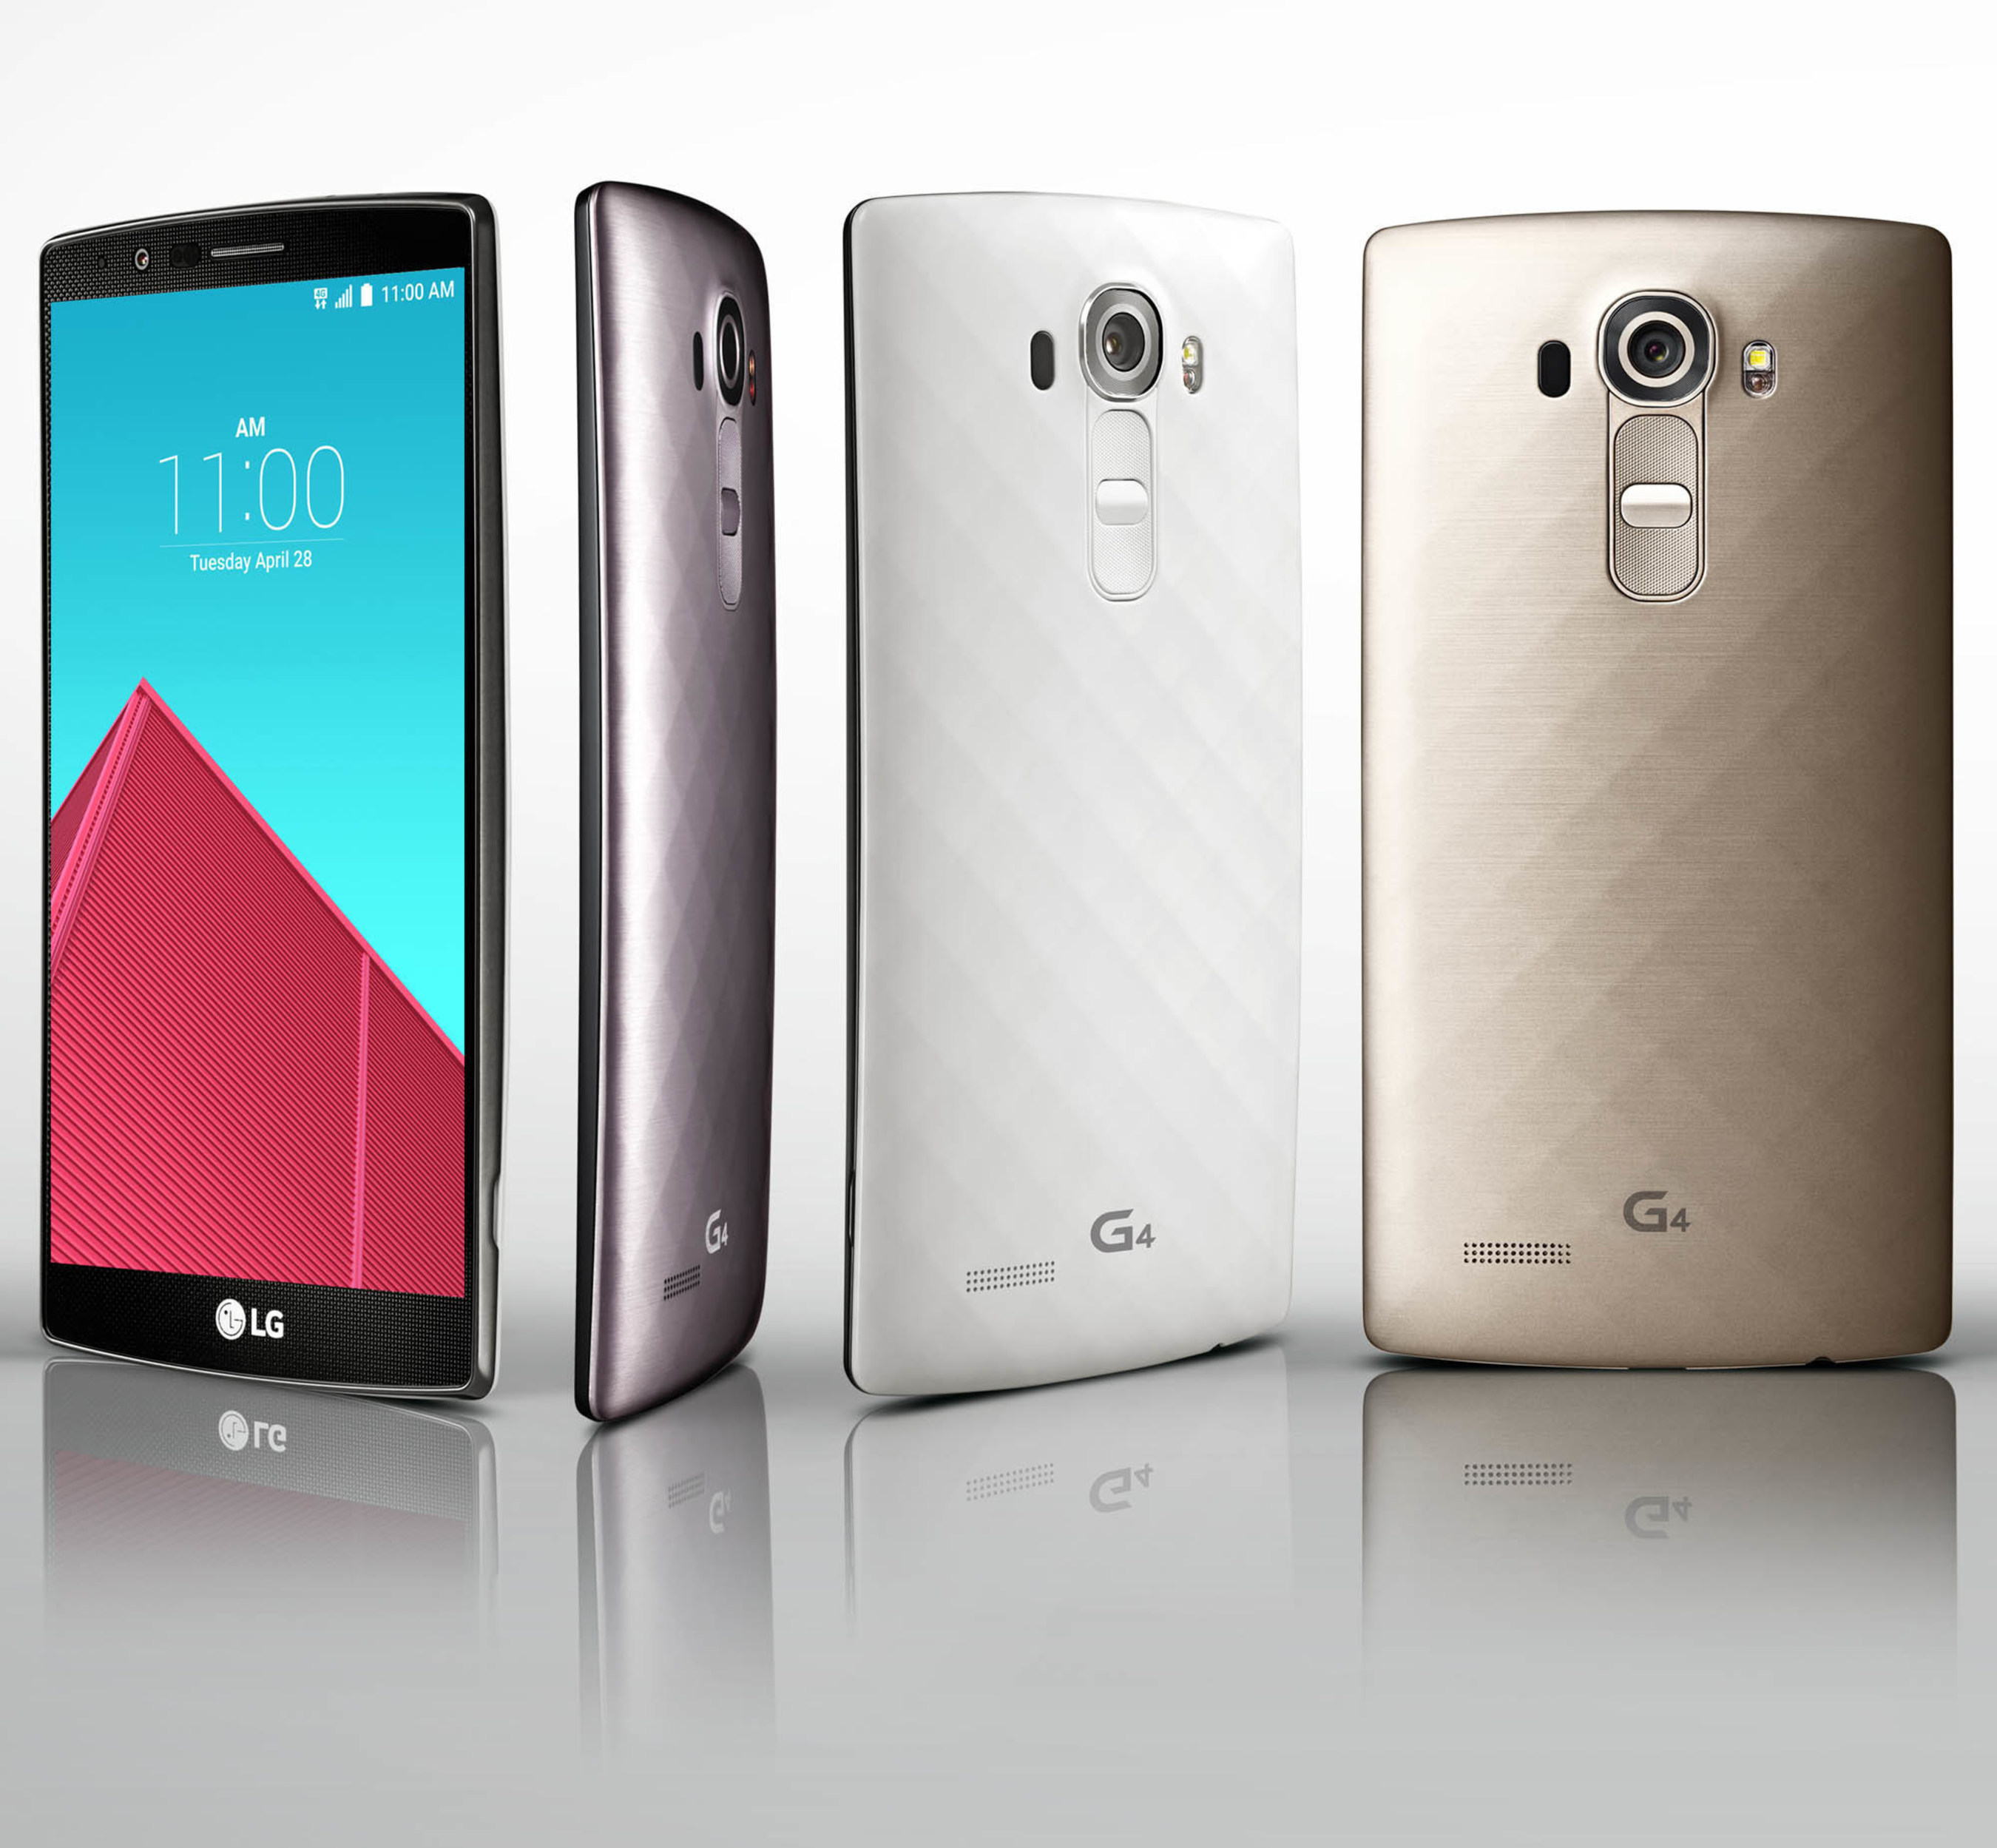 LG Launches U.S. Consumer Trial Program for LG G4 Smartphone